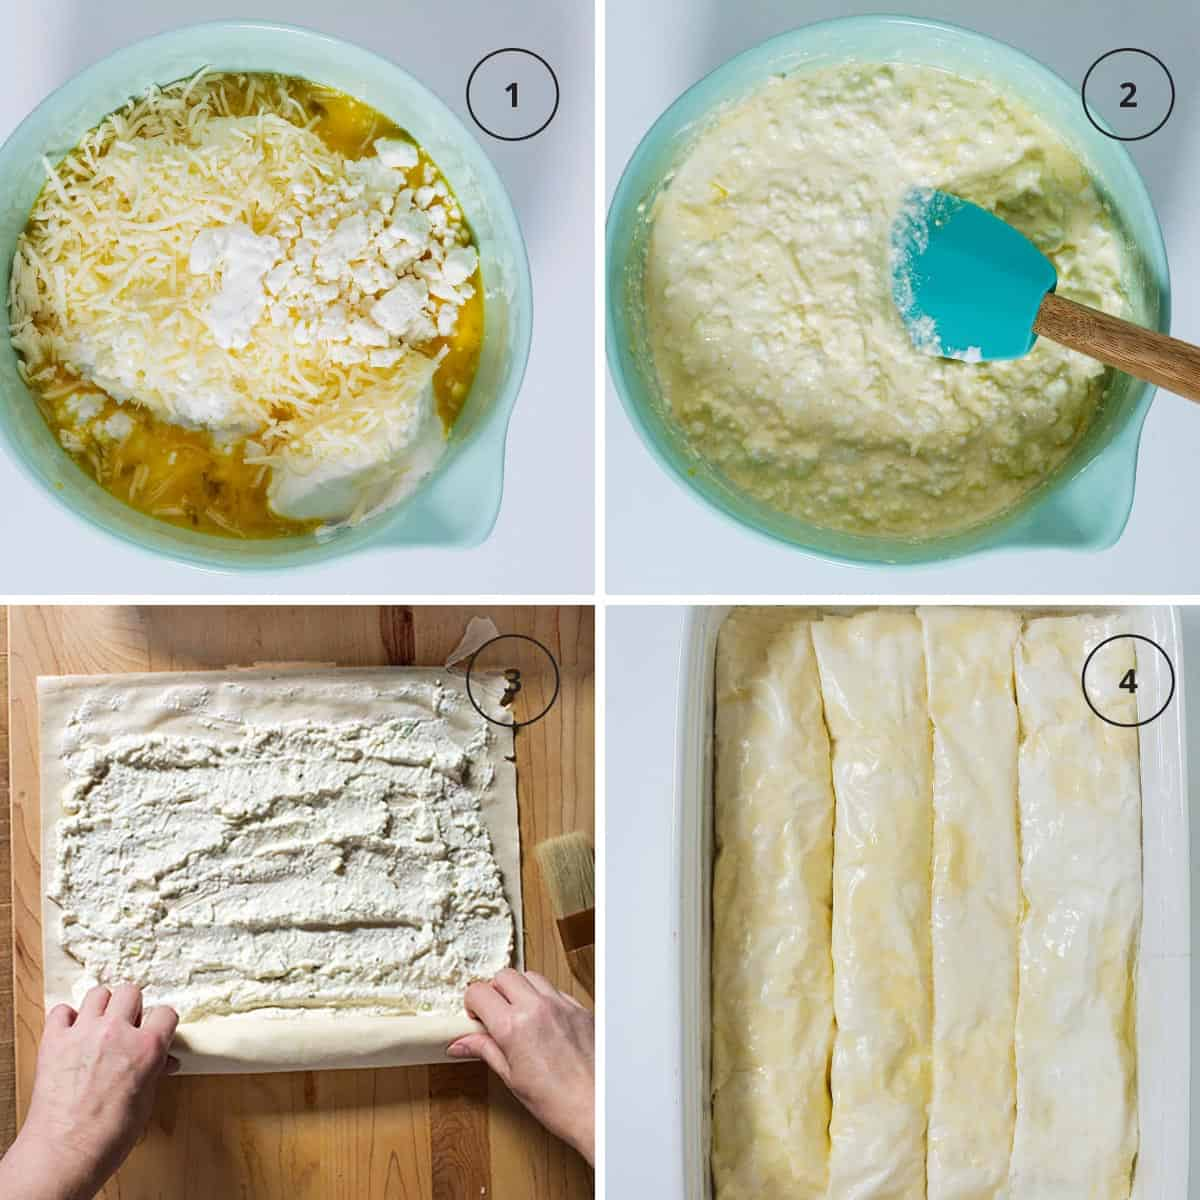 Four photos of steps for making the sirnica with cheese filling in a bowl, layering of the fillo, and fillo rolls in the baking pan.